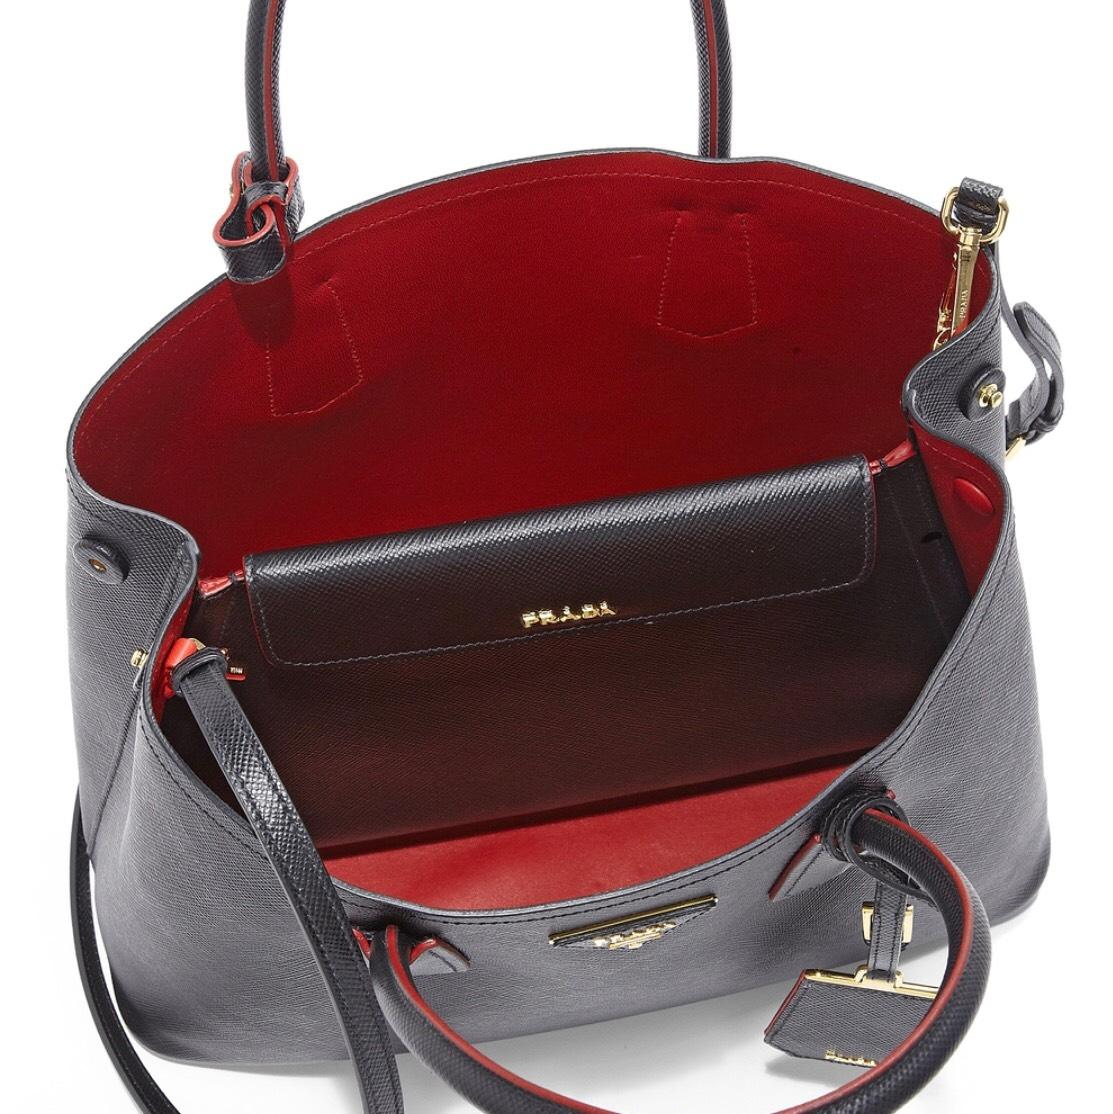 dab6affd2287 ... where to buy prada double cuir medium tote black red saffiano leather  satchel ff5bf 9e072